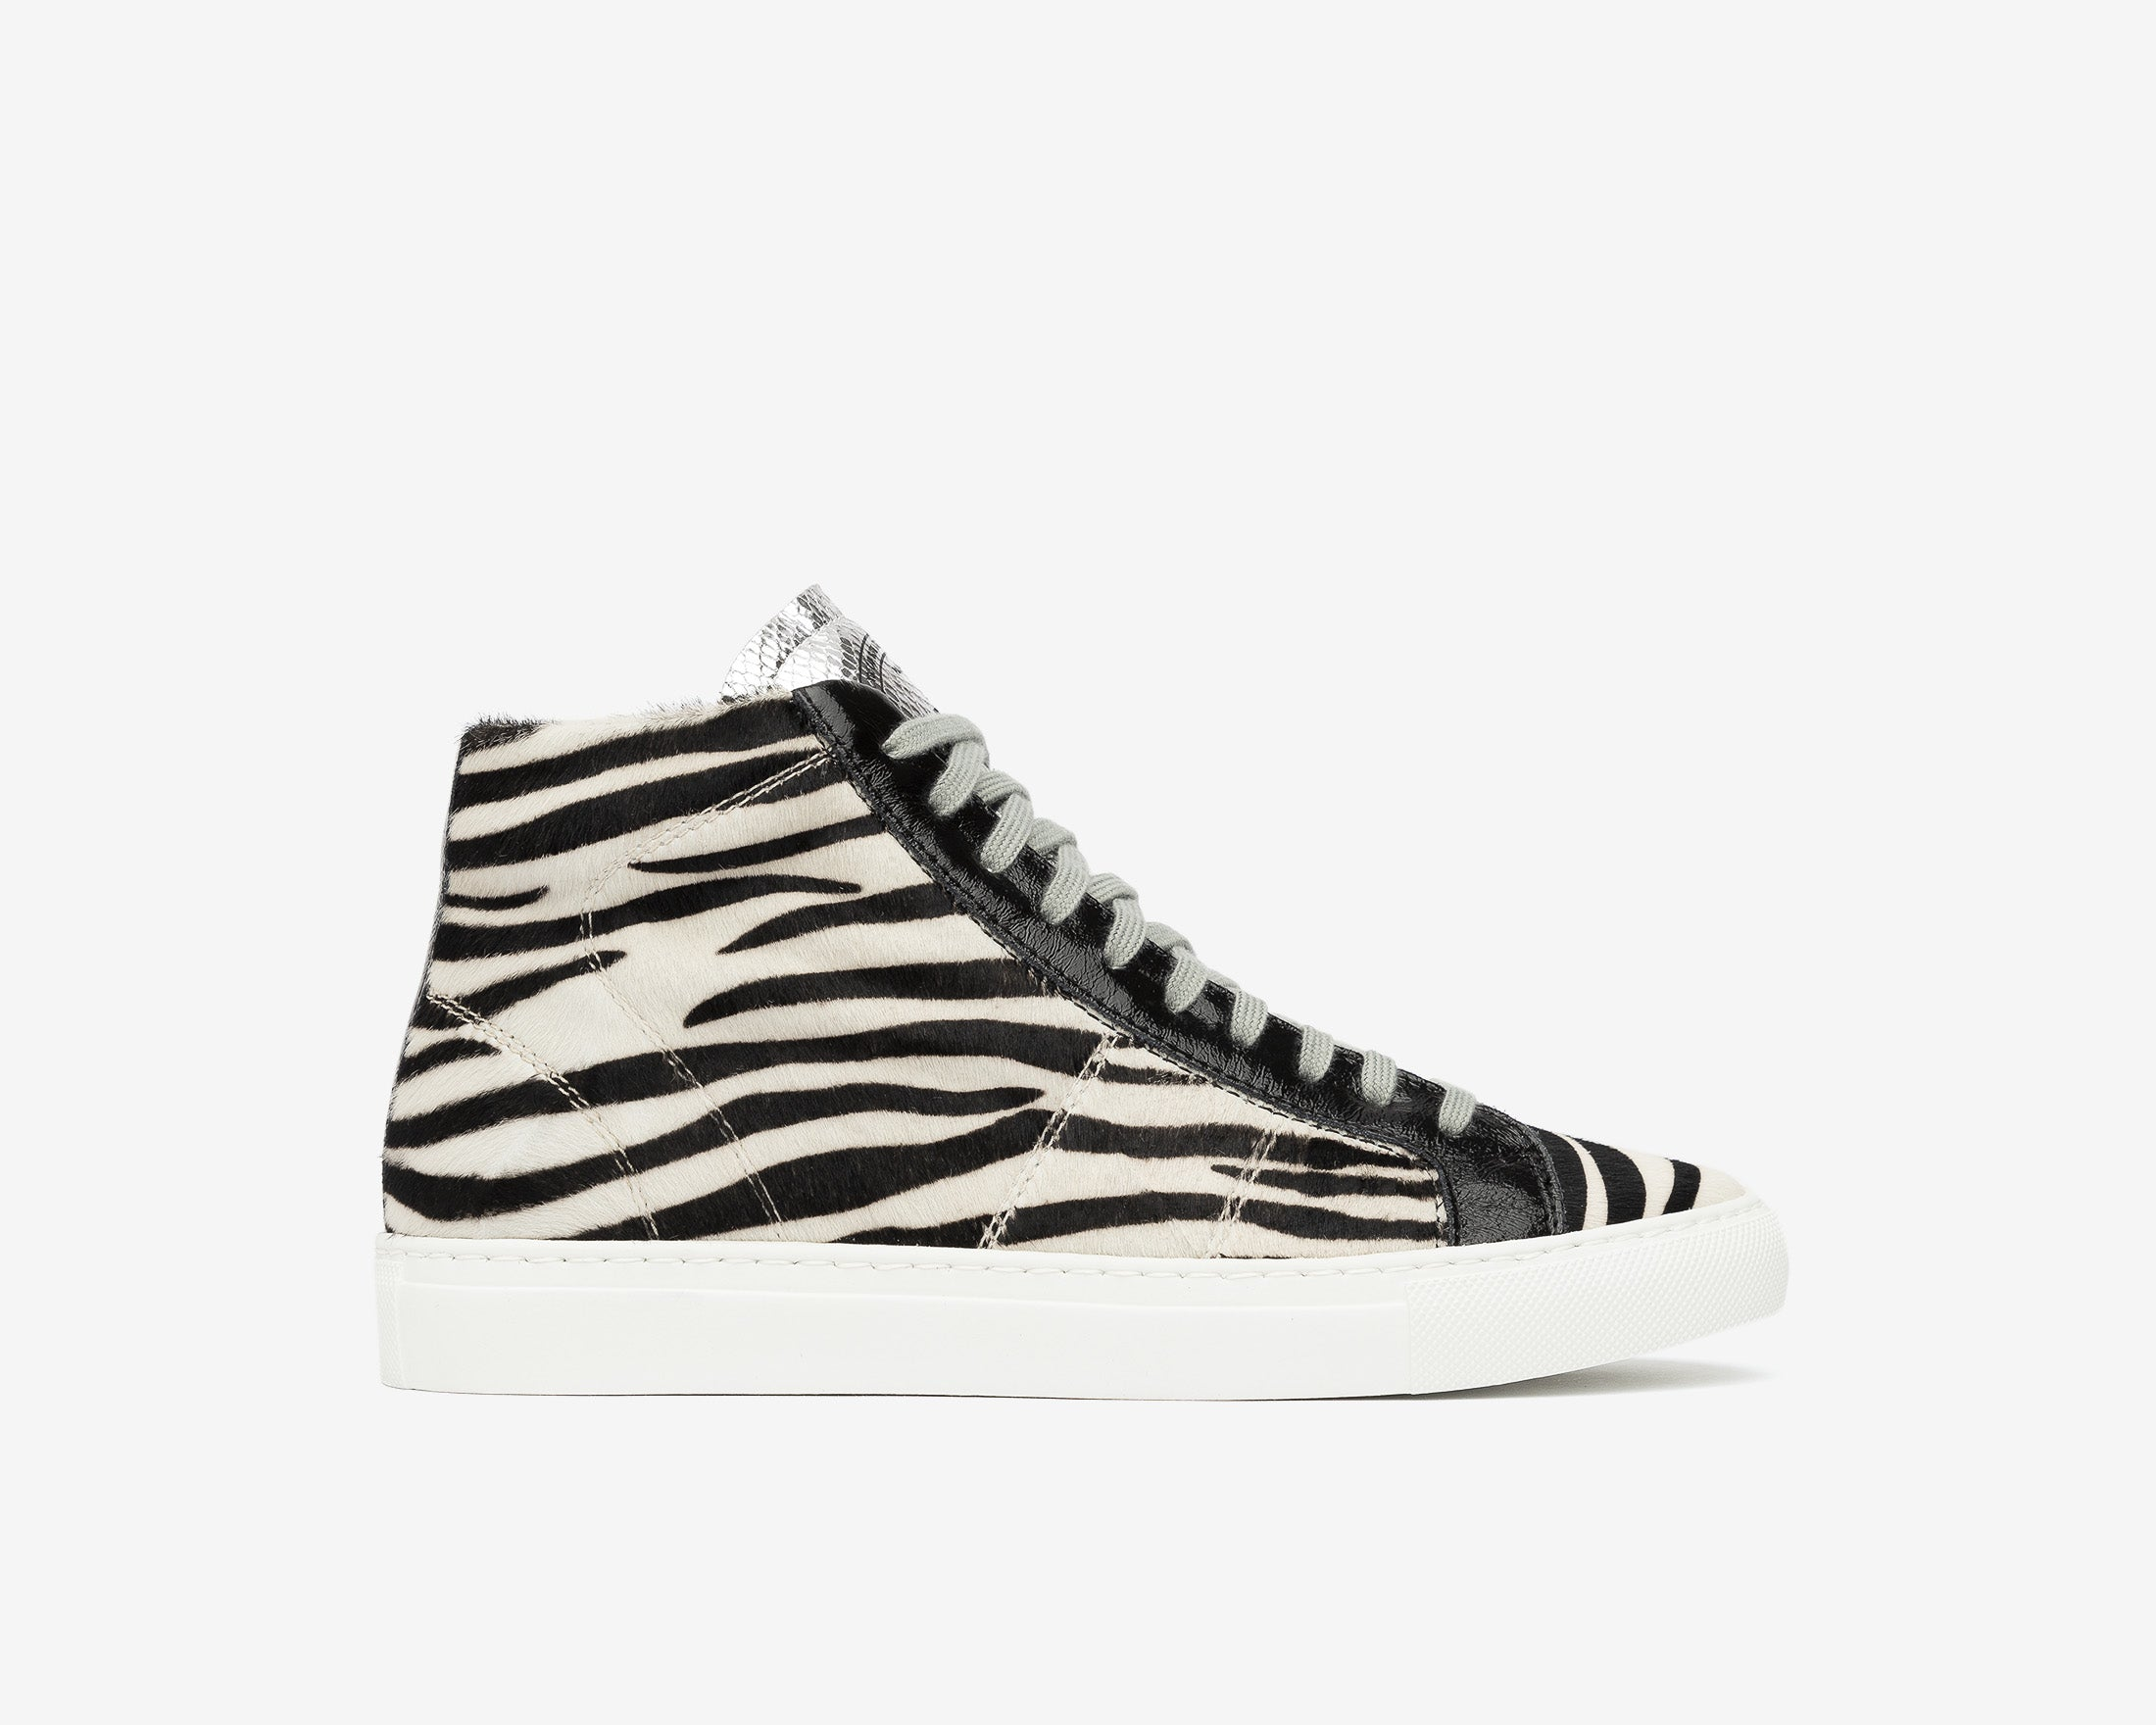 Star High-Top Sneaker in White/Black Zebra - Profile